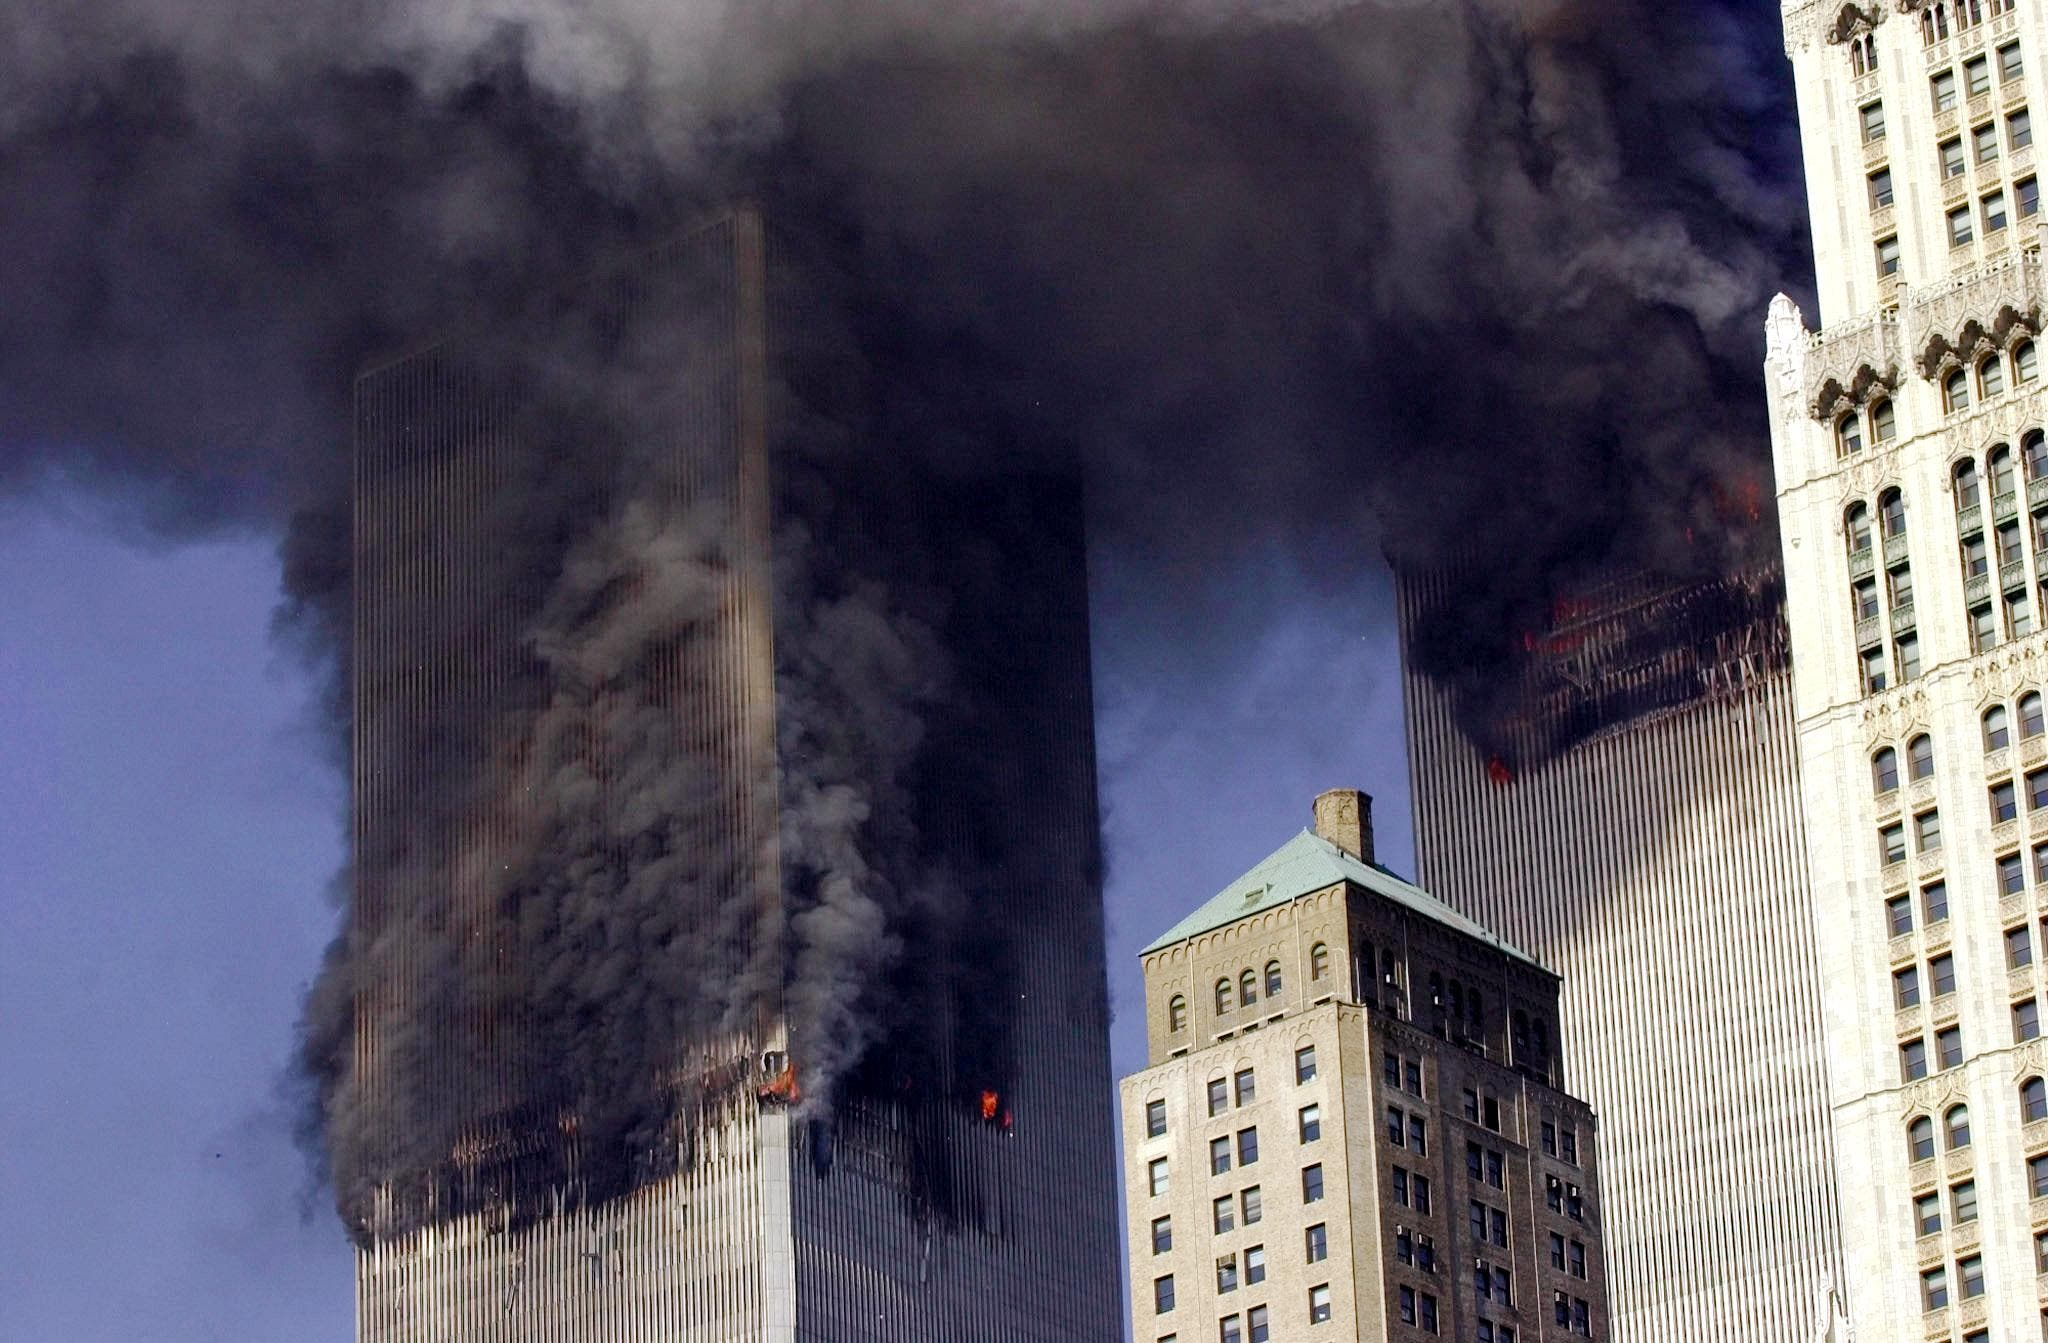 Photo dated 11 September 2001 shows the twin towers of the World Trade Center burning after two planes crashed into each building in New York. (AFP)